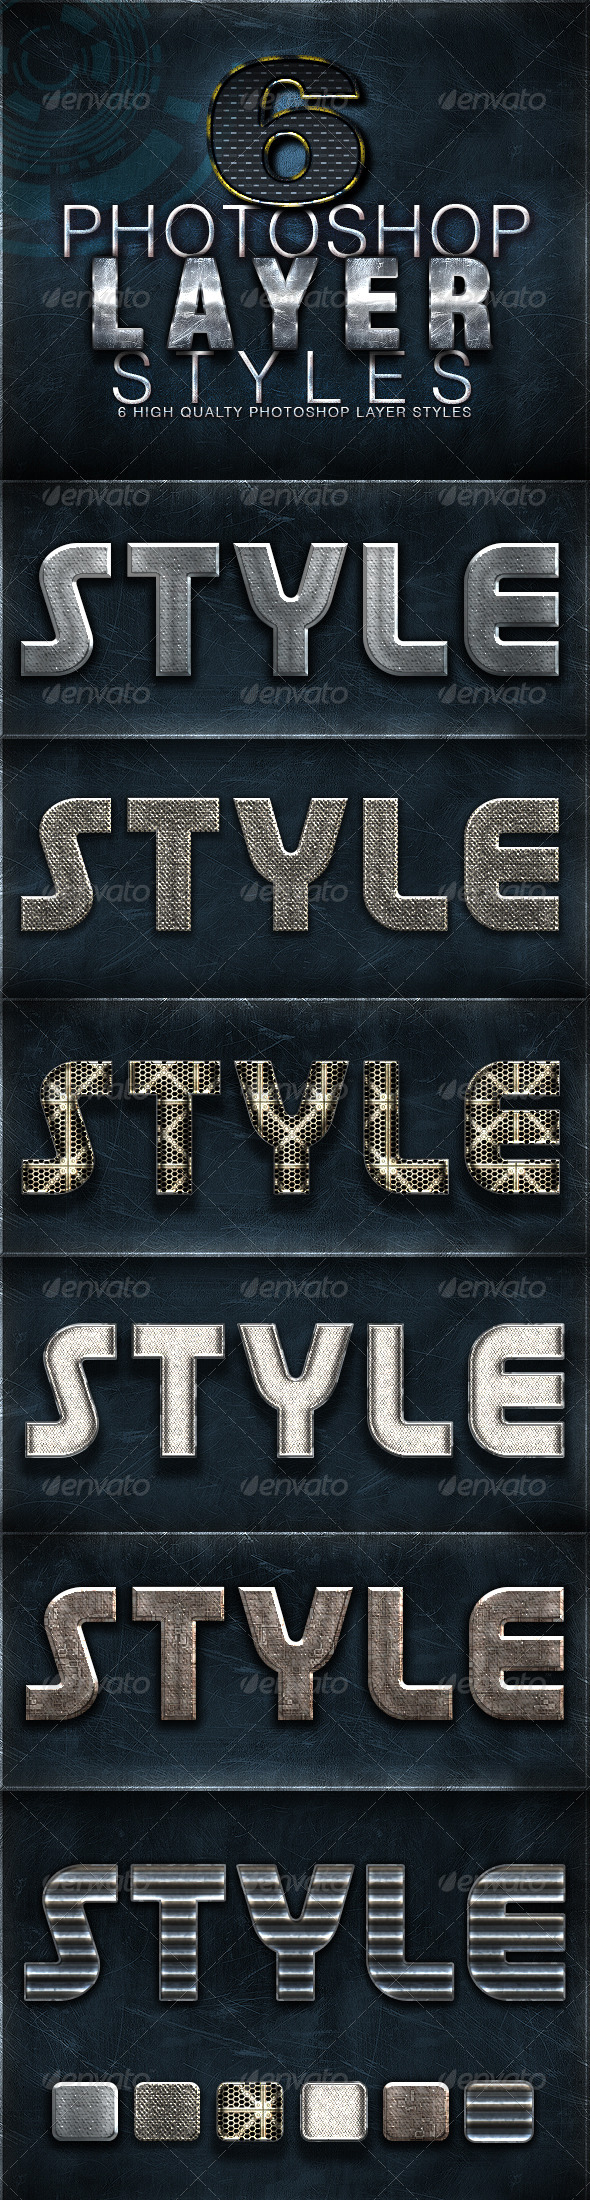 GraphicRiver 6 Photoshop Layer Styles 4904506